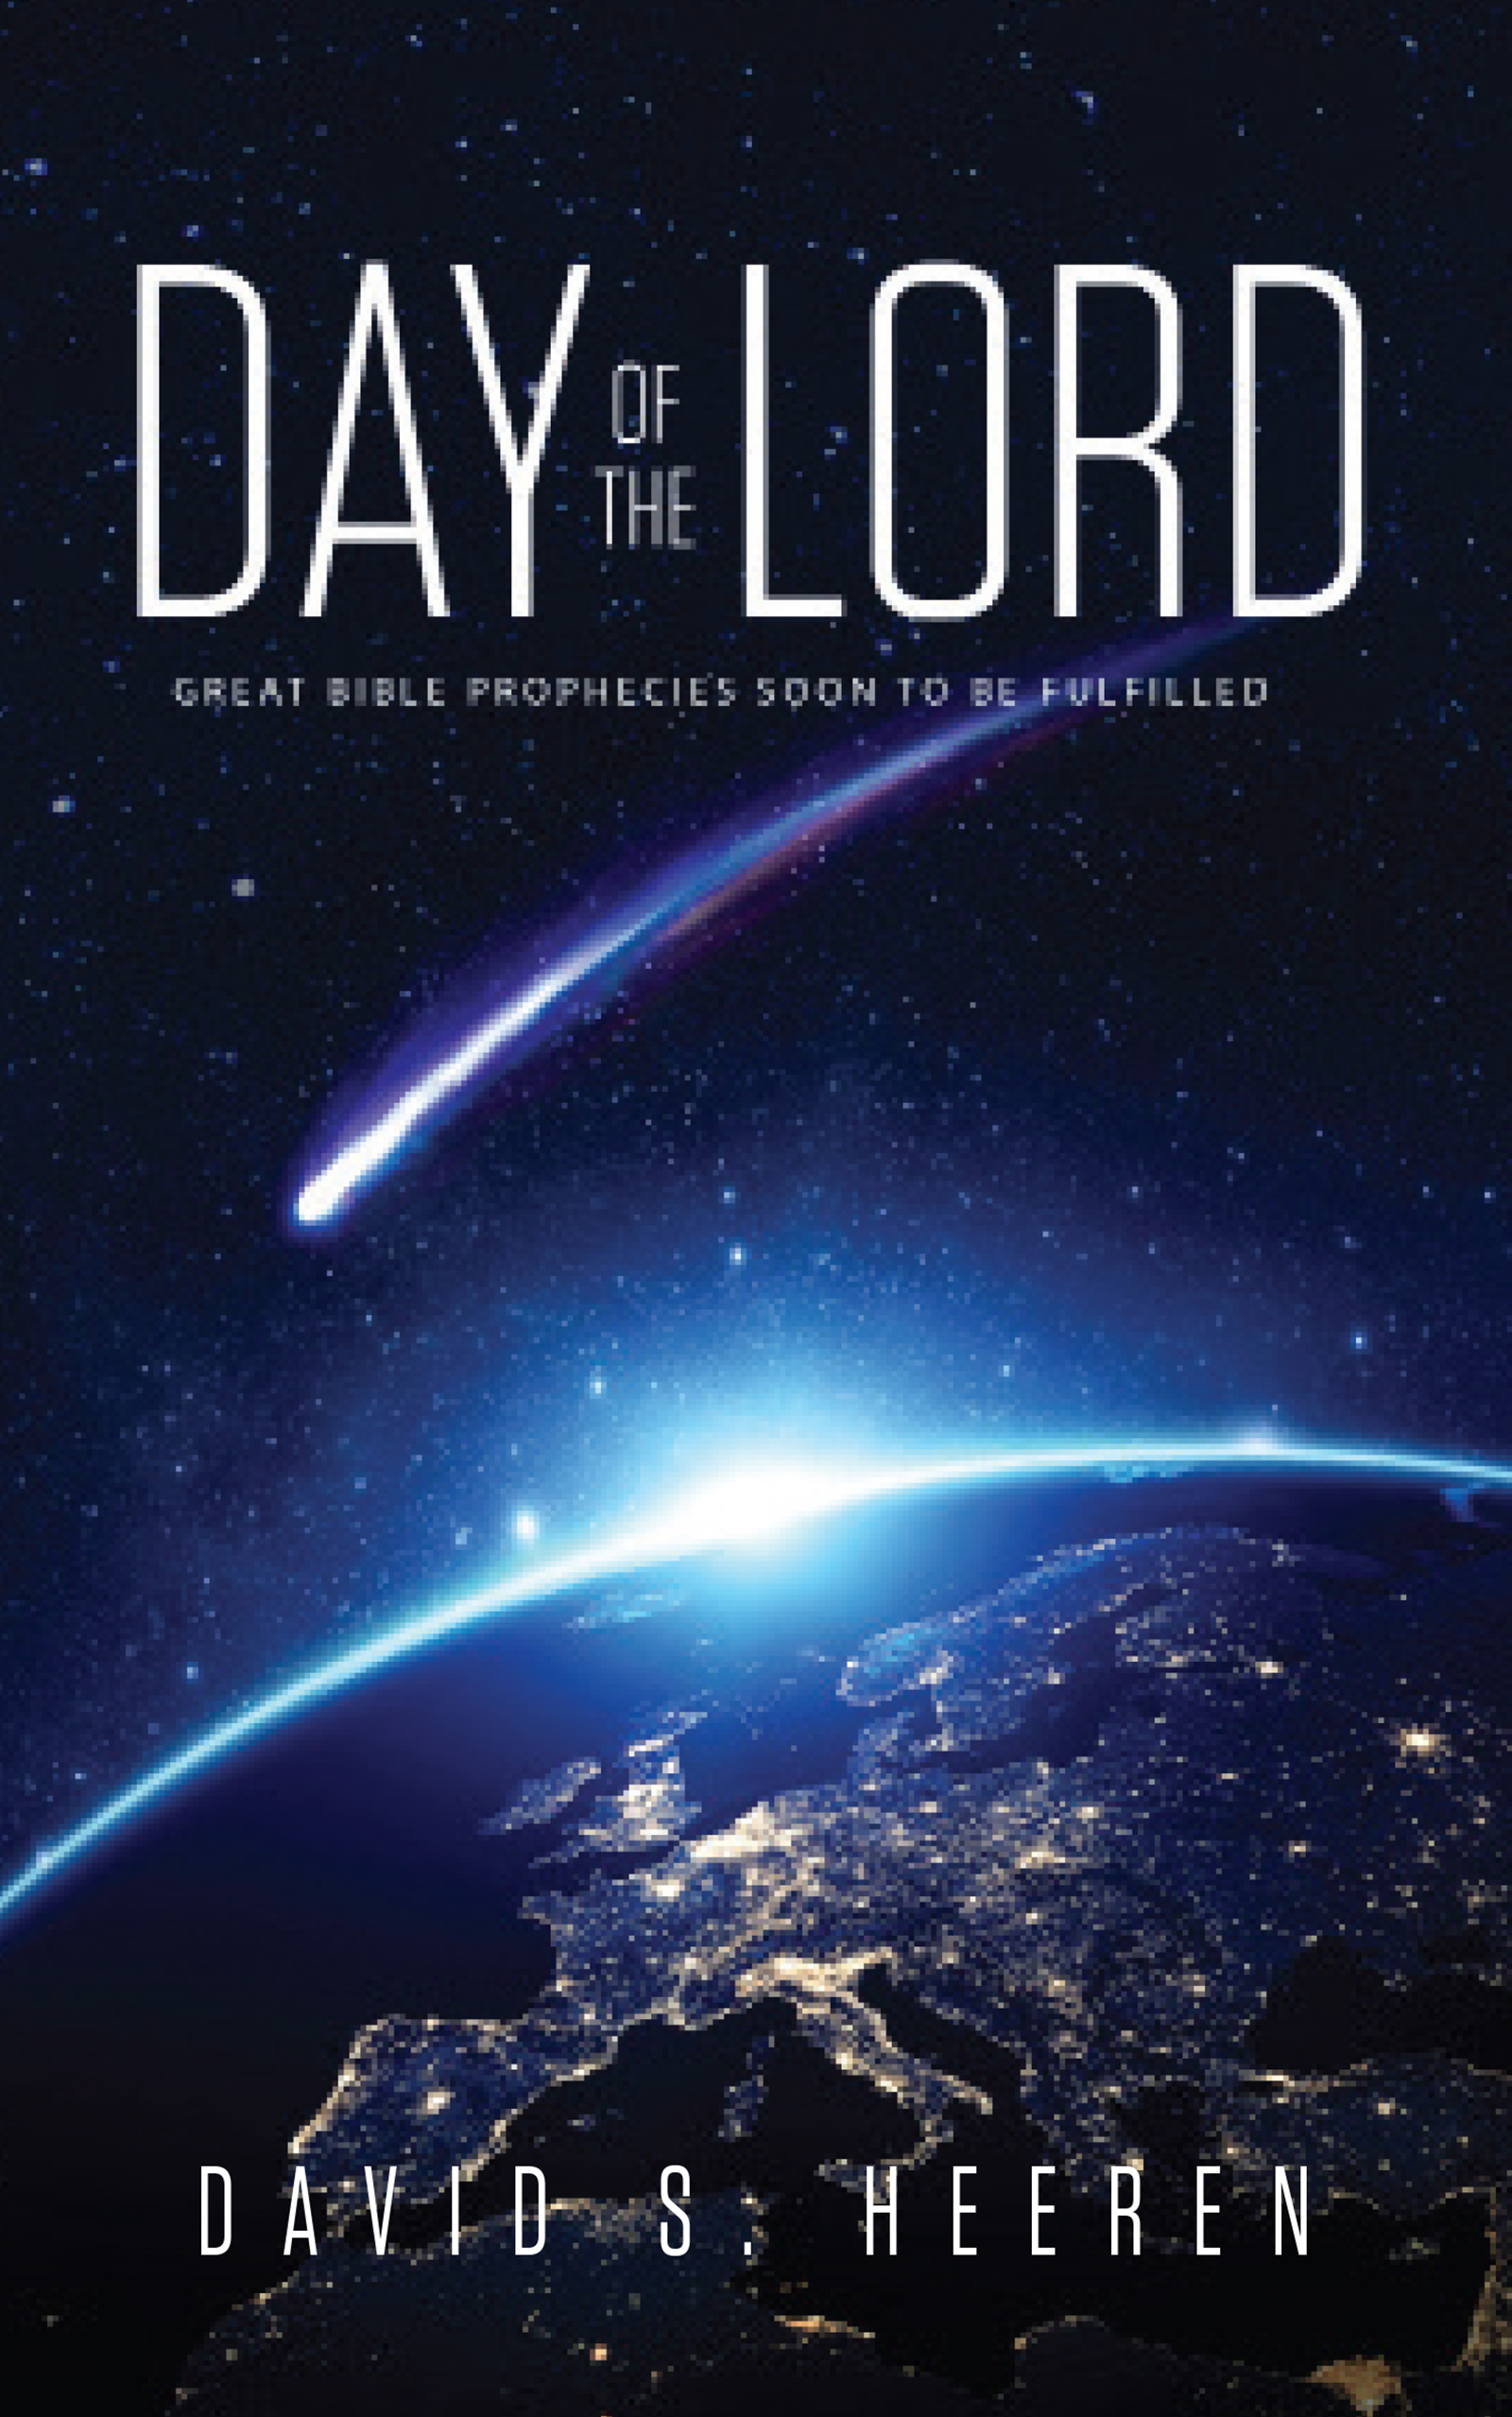 Surprising Truth about the Bible's Prophecies Revealed in a Book